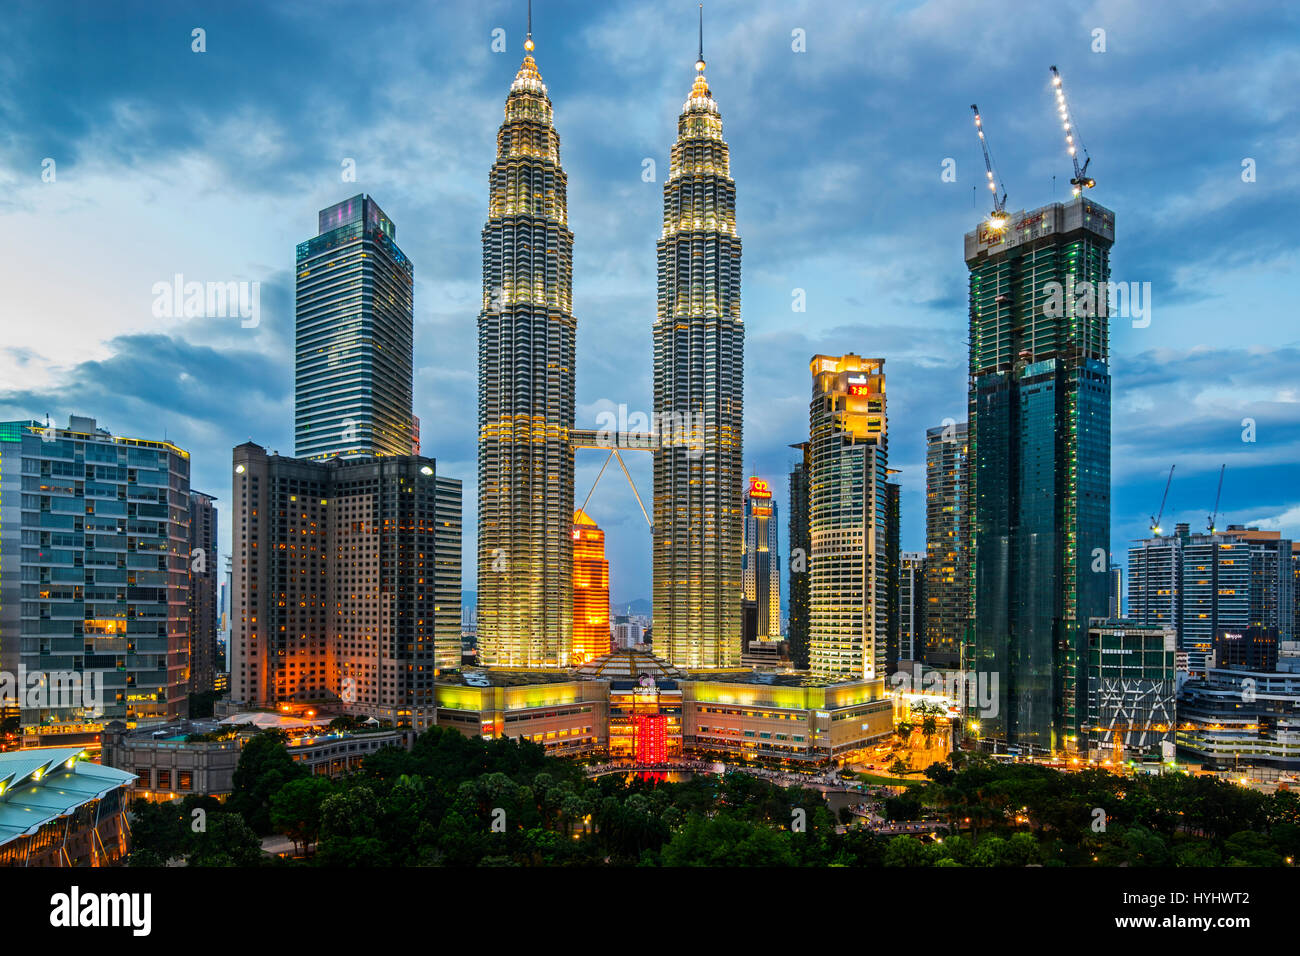 Kuala Lumpur Petronas Twin Towers and City Centre Overview, Malaysia Stock Photo